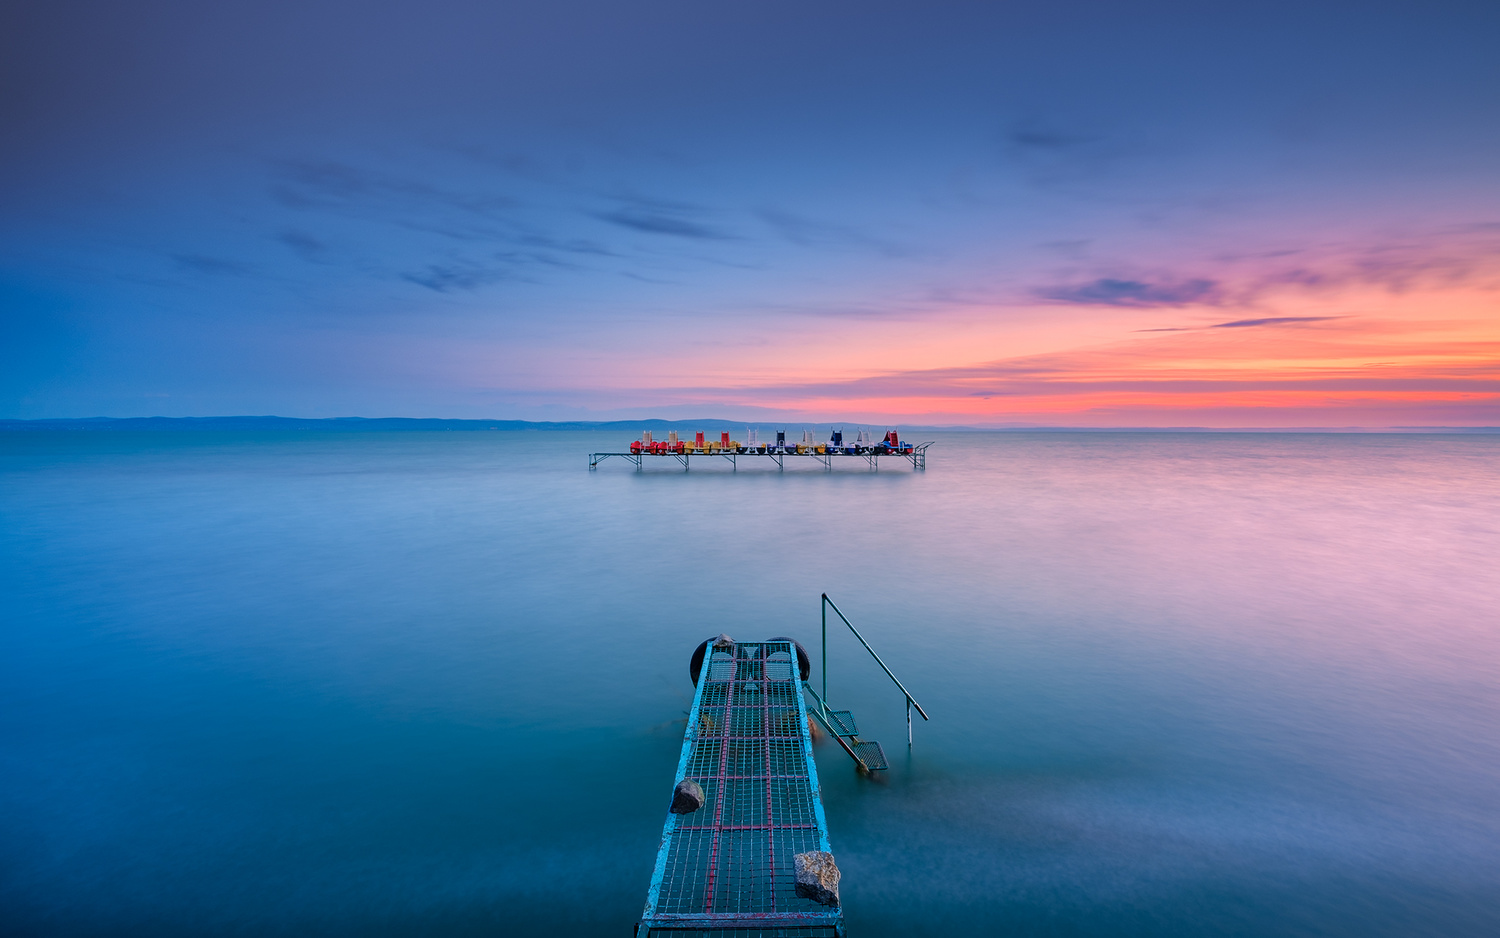 Balaton Lake dawn by Anton Galitch